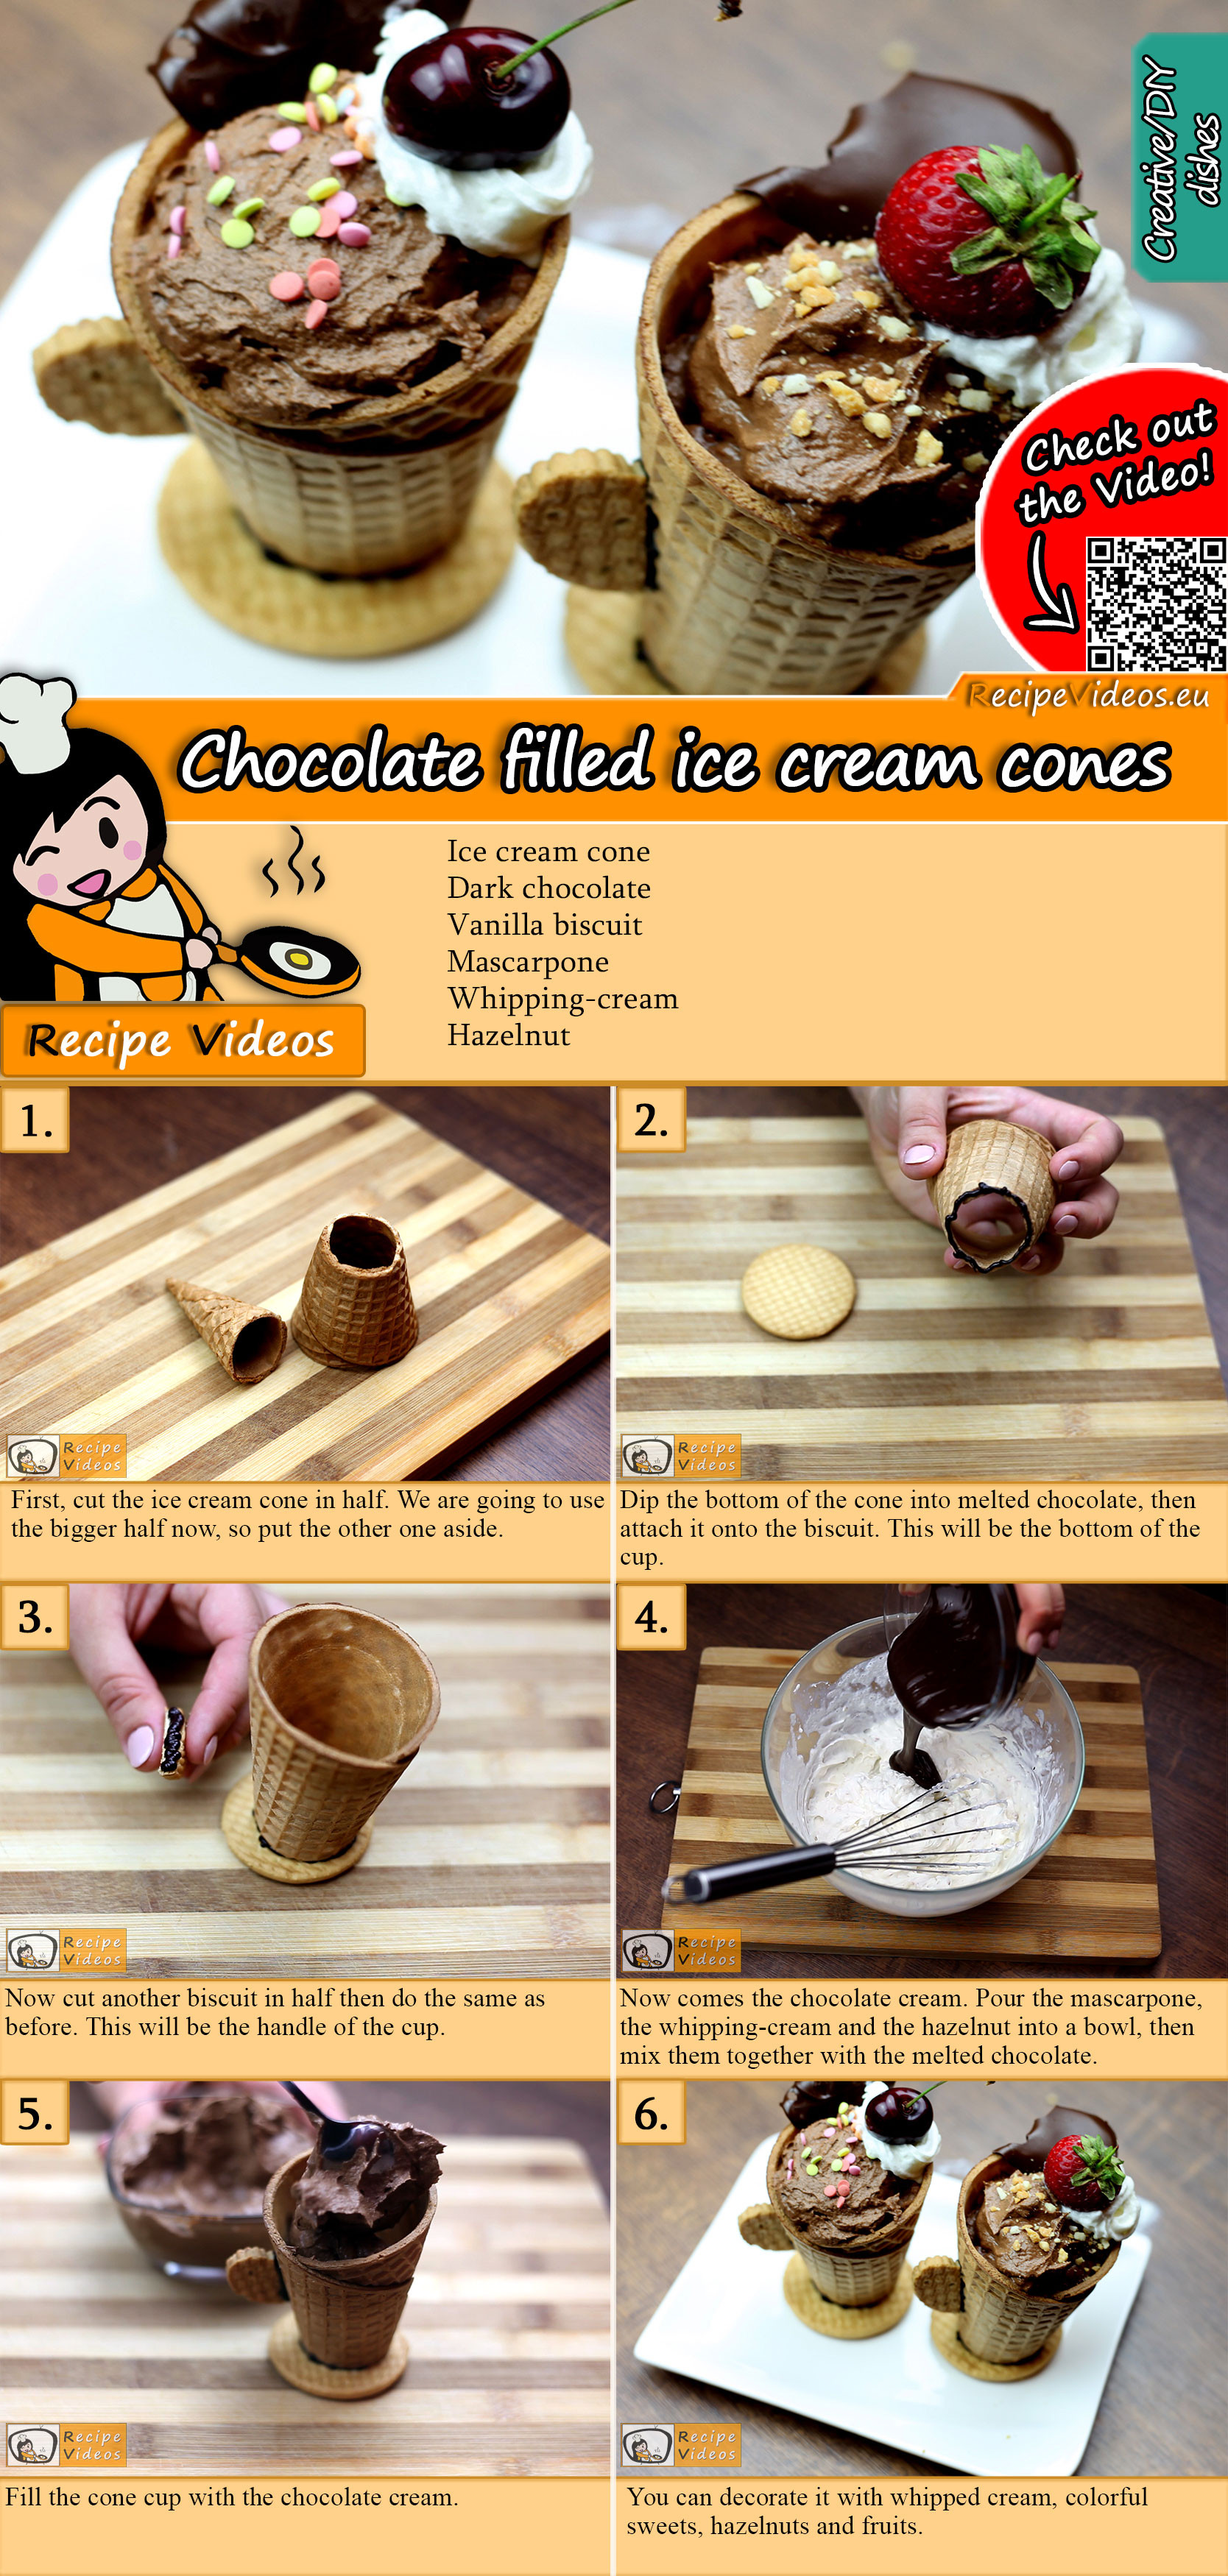 Chocolate filled ice cream cones recipe with video